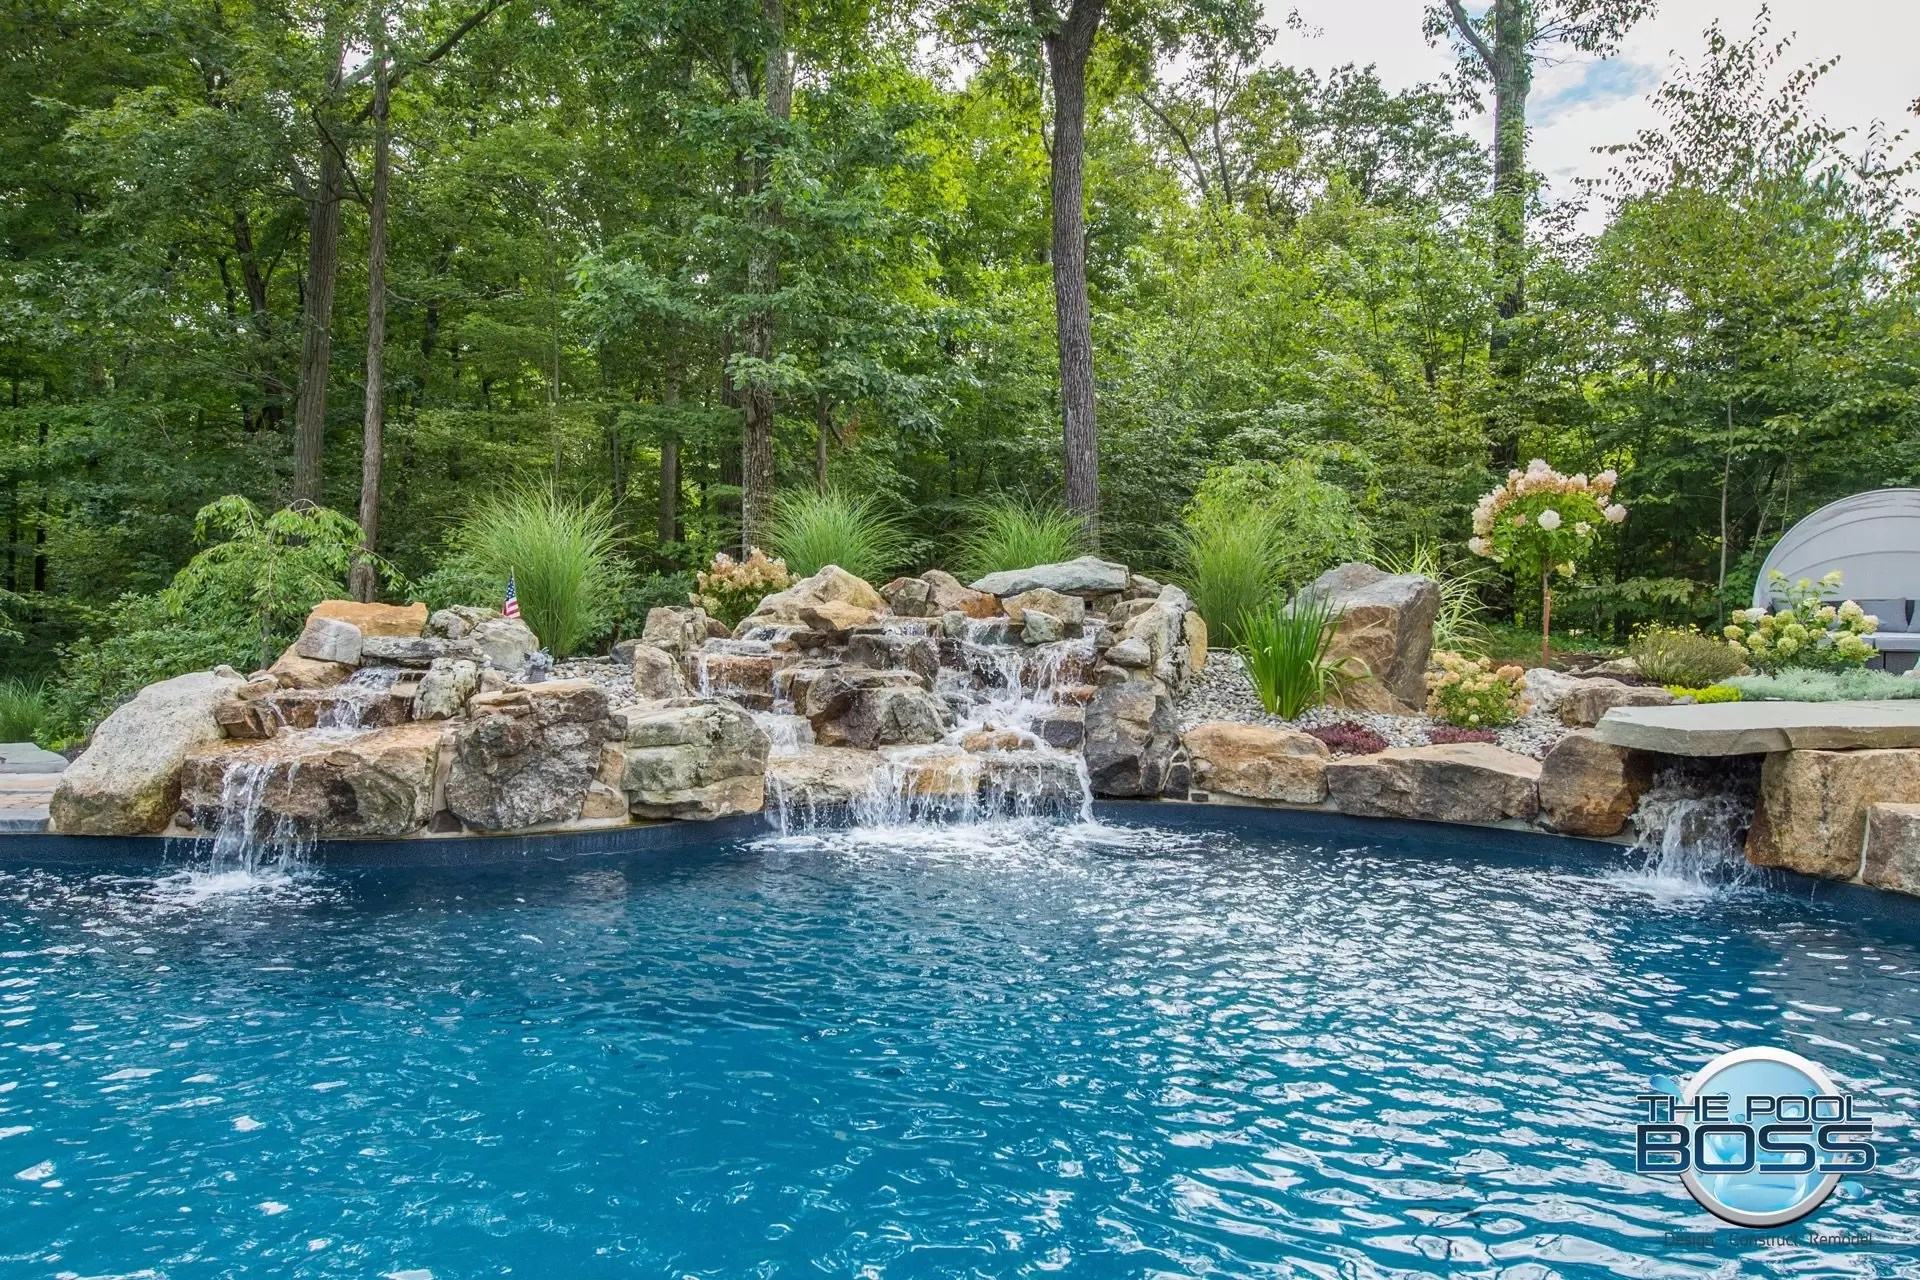 Sparta, NJ - The Pool Boss | NJ's #1 In Ground Swimming ... on Sparta Outdoor Living id=55901